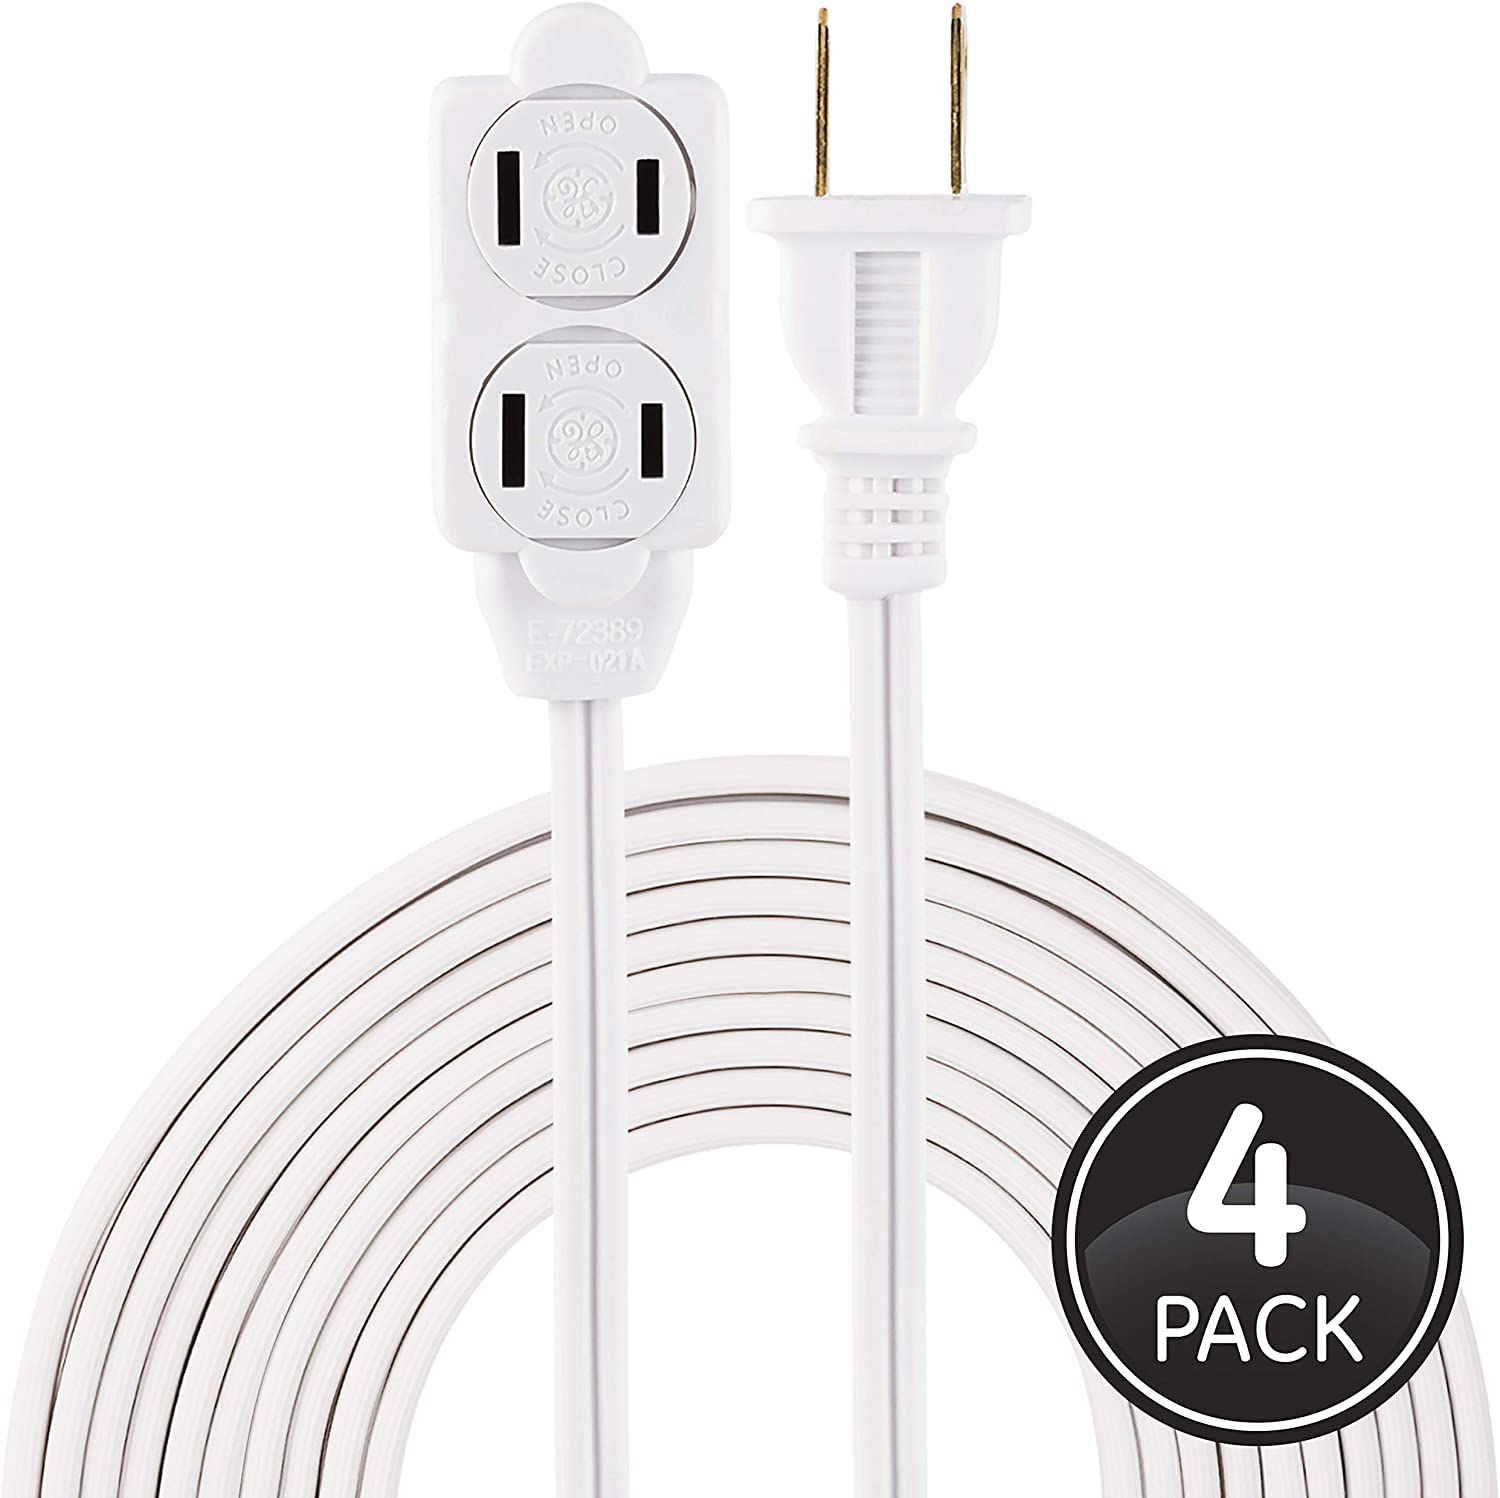 GE, White, 15 ft Extension Cord 4 Pack, 3 Outlet Power Strip, Polarized, 16 Gauge, Twist-to-Close Safety Covers, Indoor Rated, Perfect for Home, Office or Kitchen, UL Listed, 50366